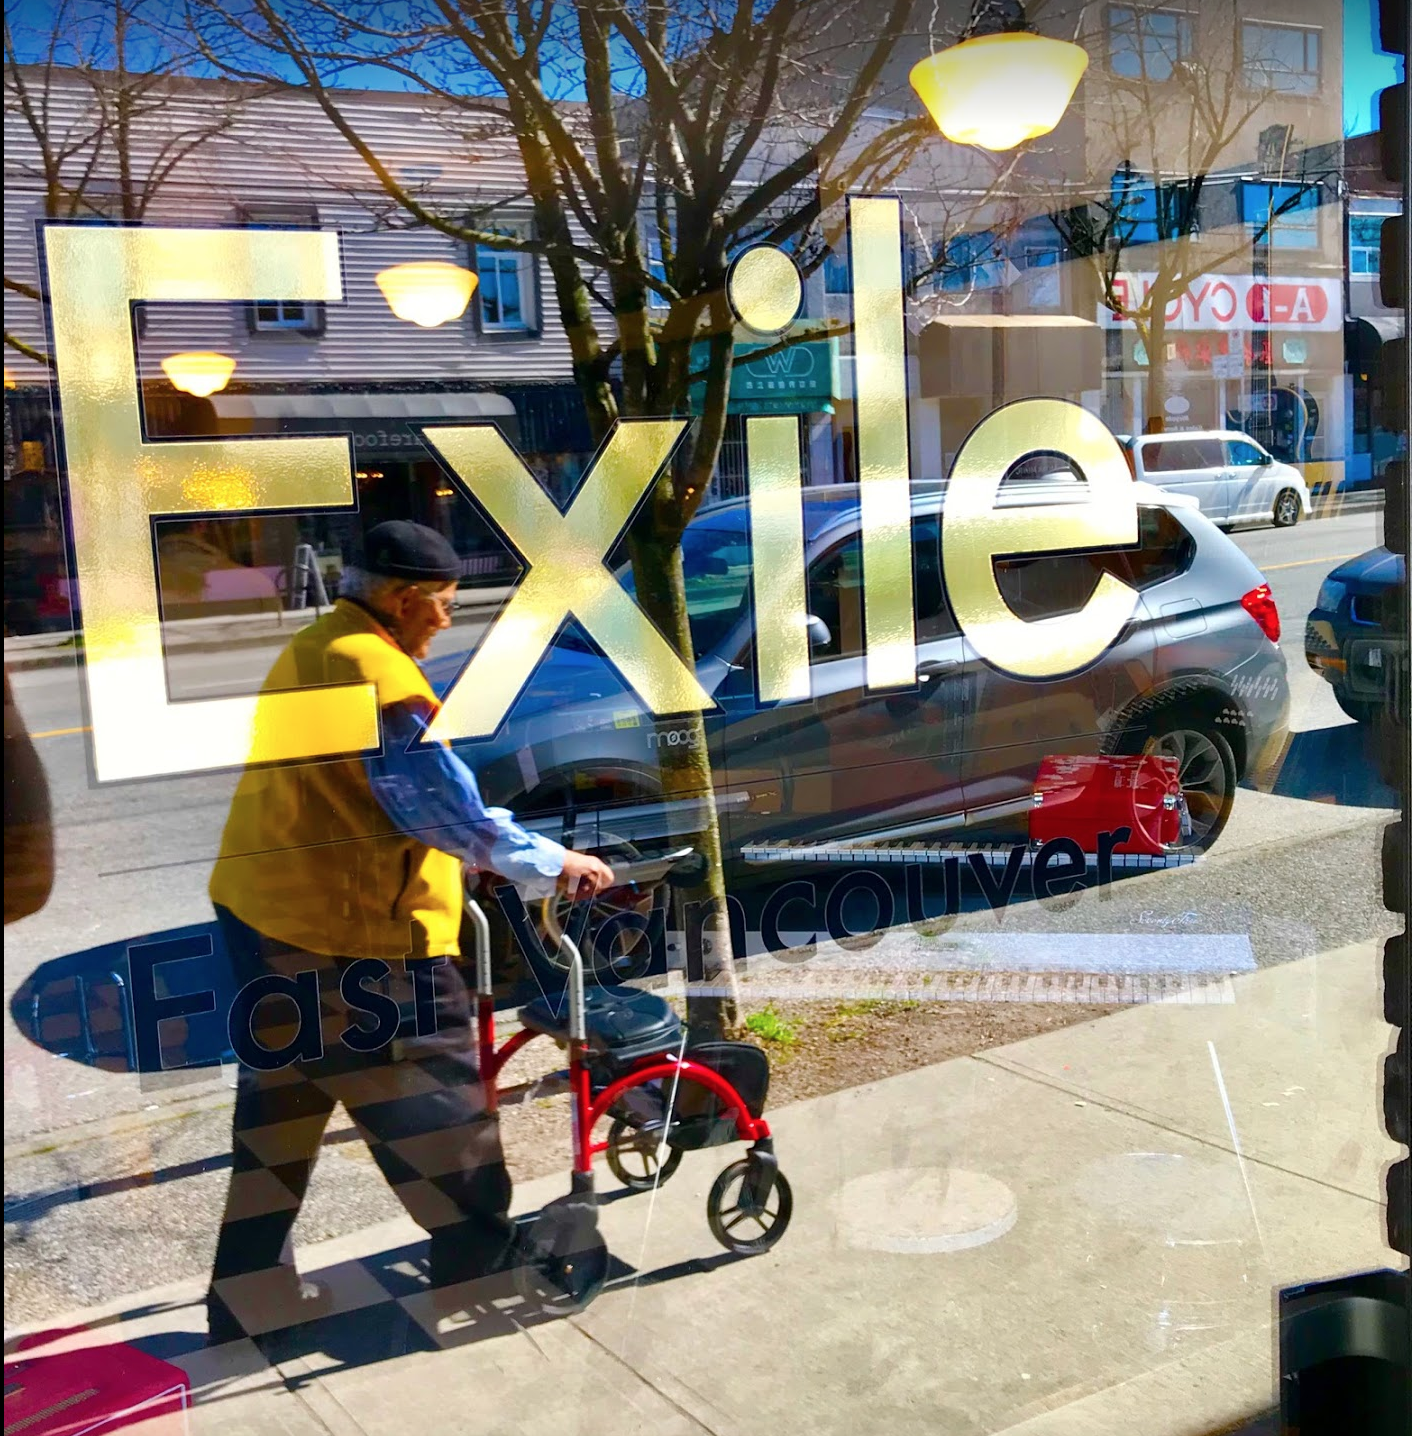 Yes there is even an Exile on Main Street in Vancouver….